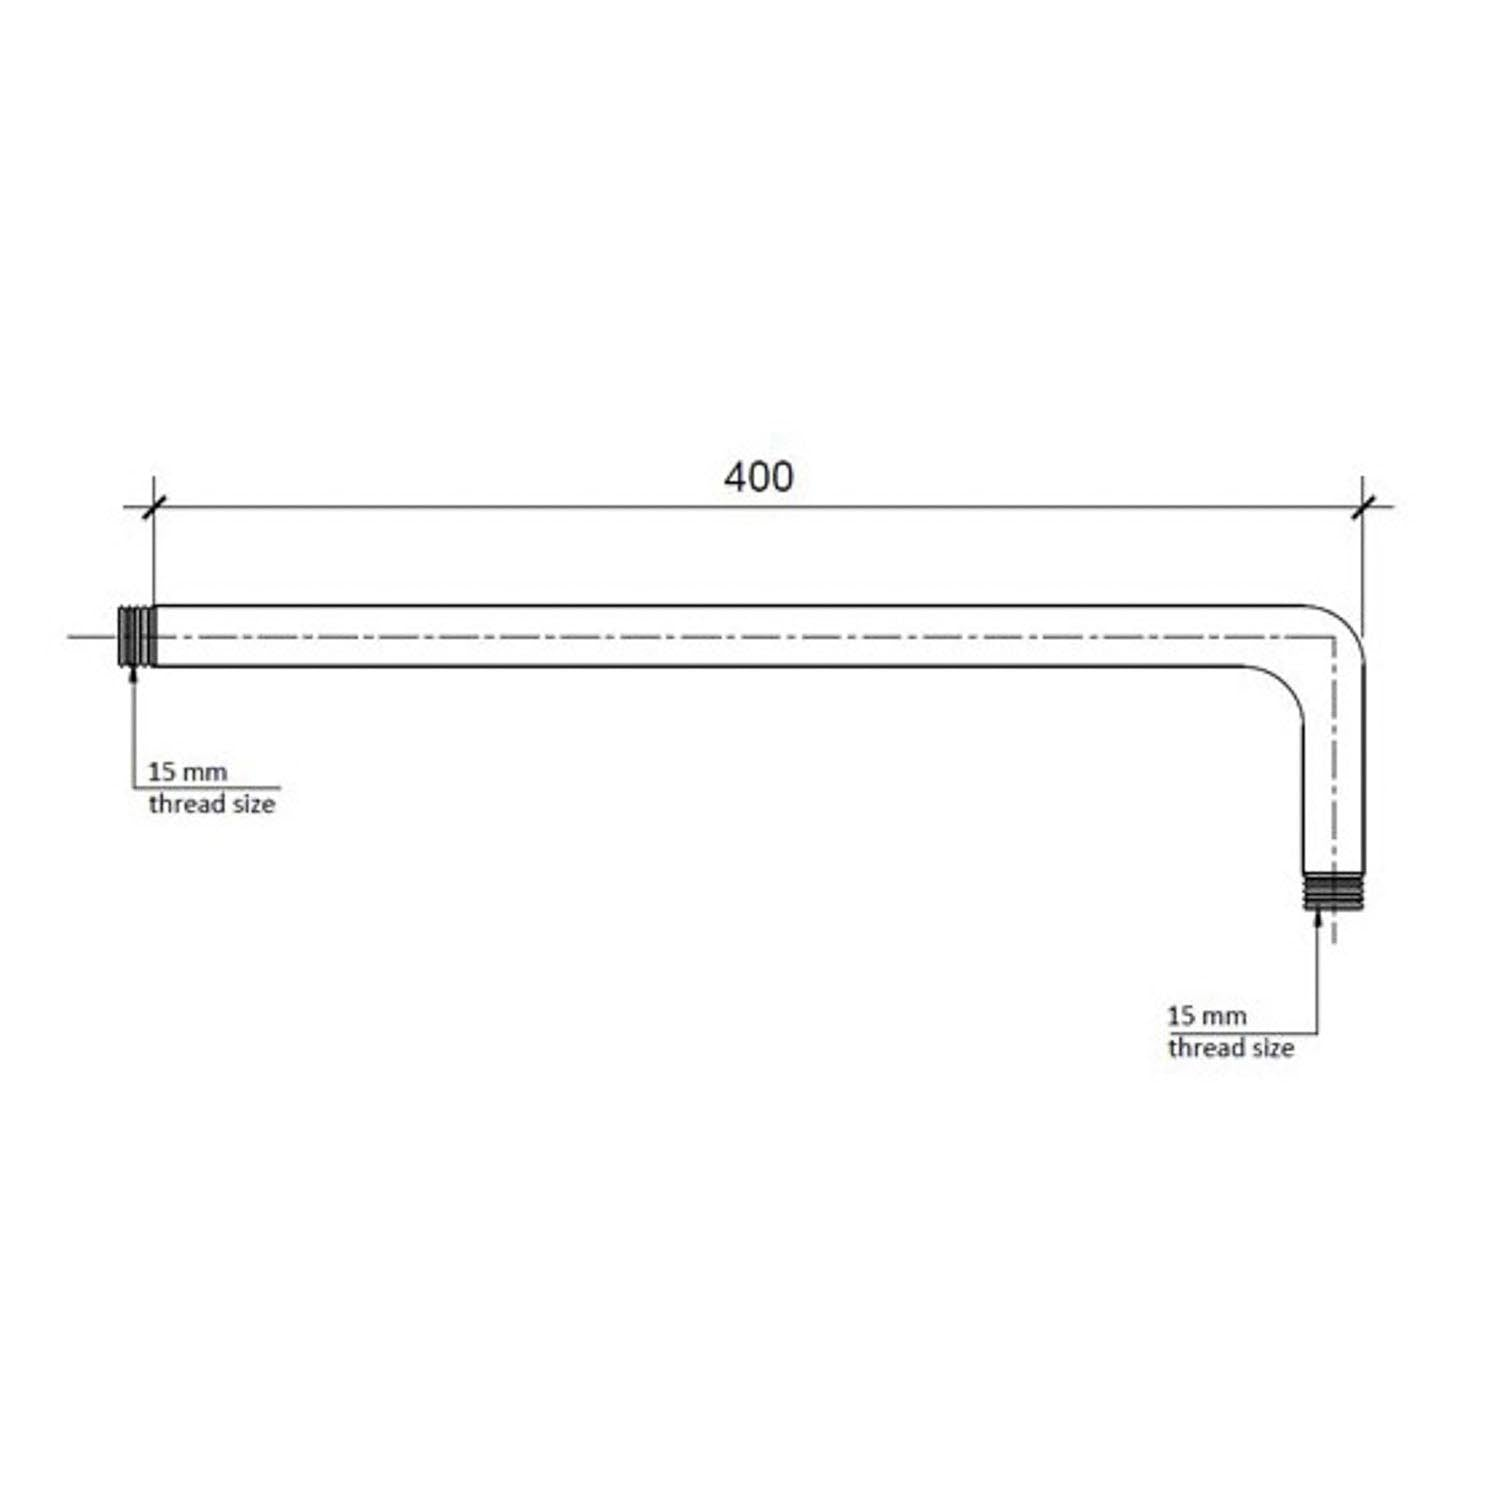 400mm Modale wall mounted Shower Arm with a chrome finish dimensional drawing